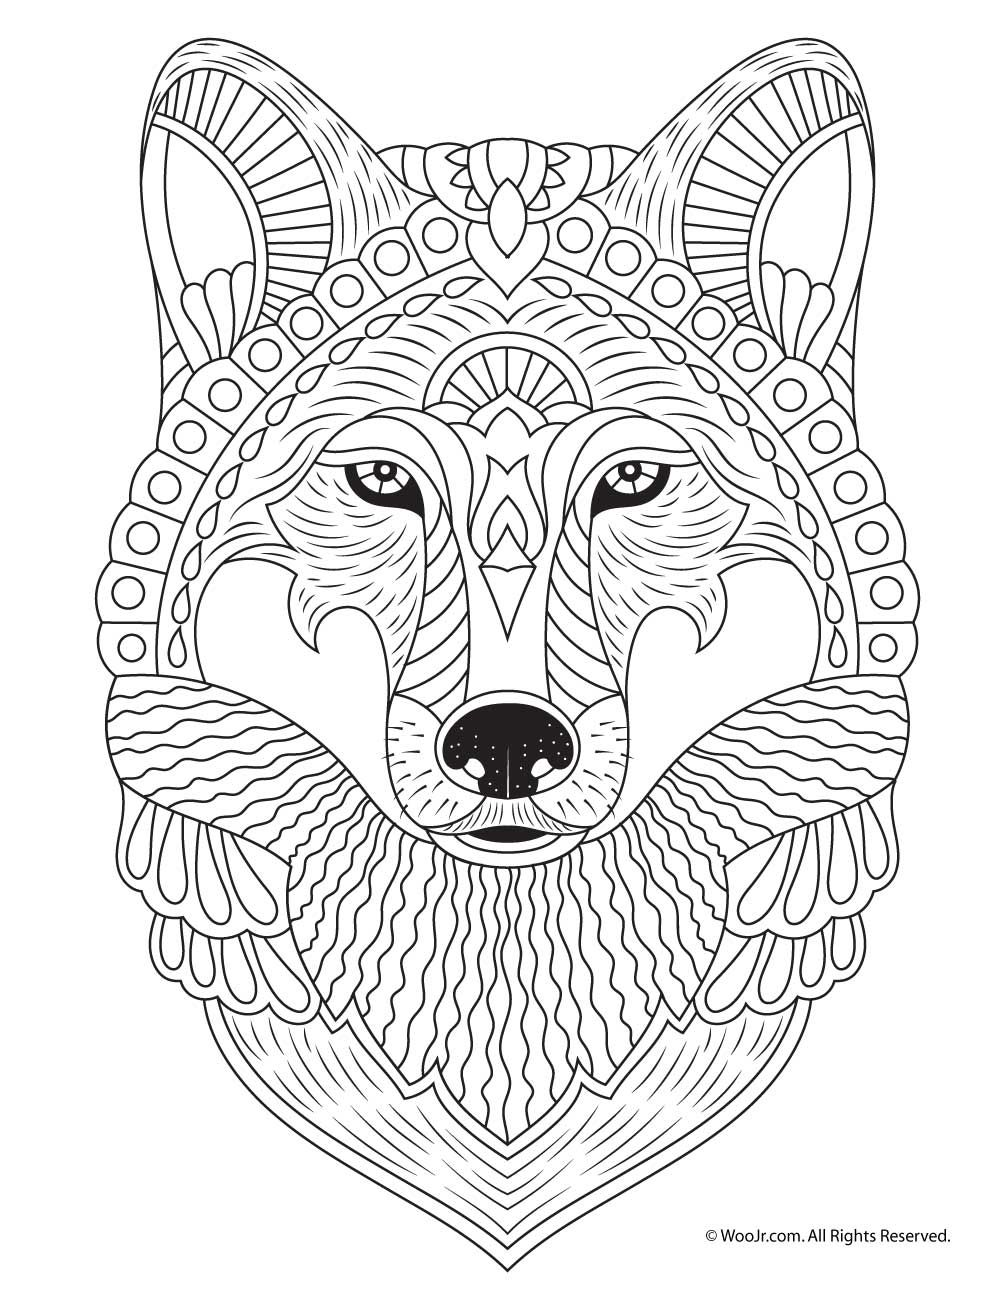 wolf face coloring pages wolf face coloring pages coloring face wolf pages